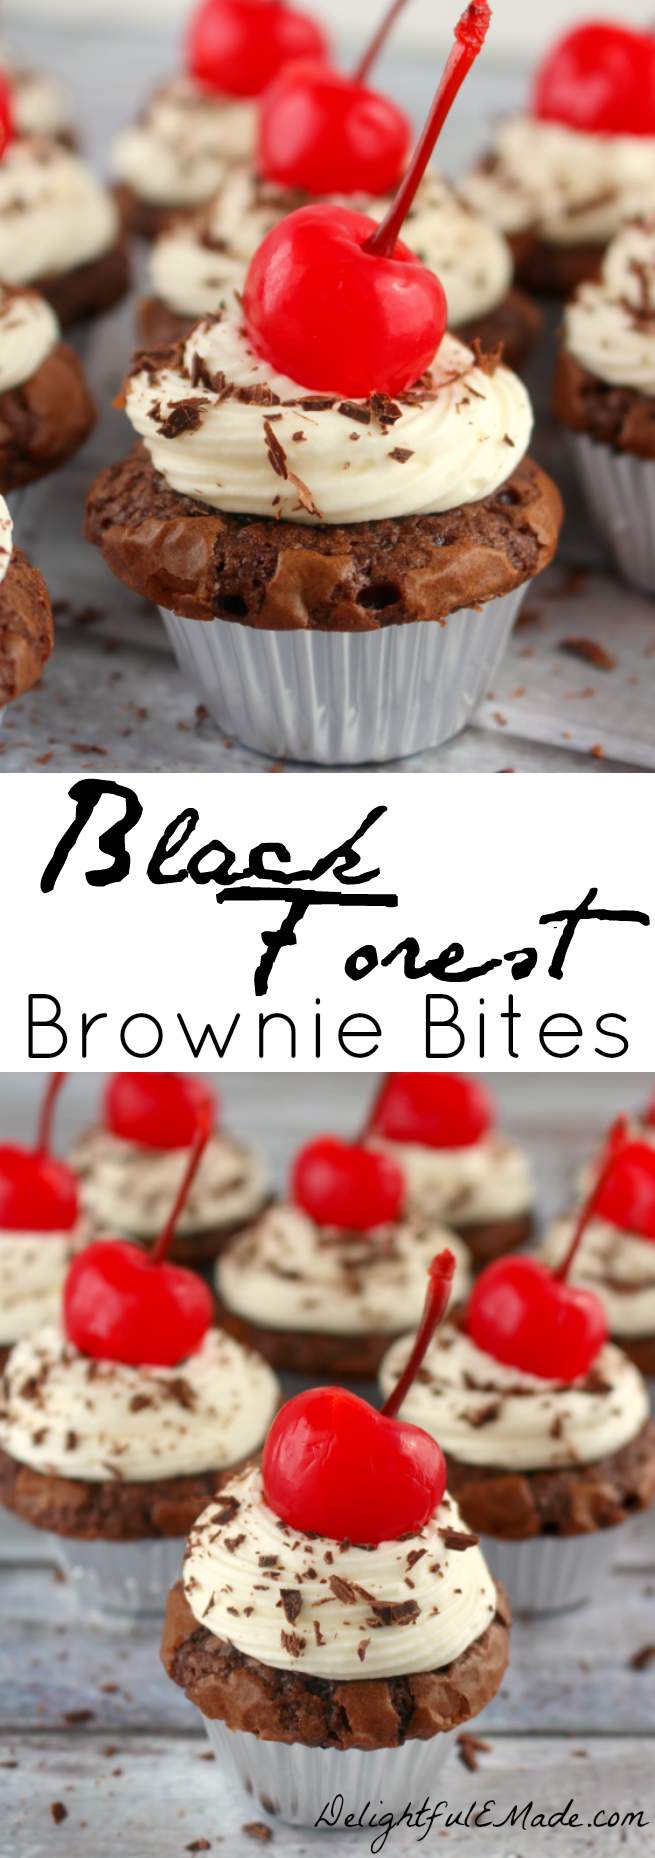 brownie bites mini brownie wannabe fudgy bites grain free of course ...